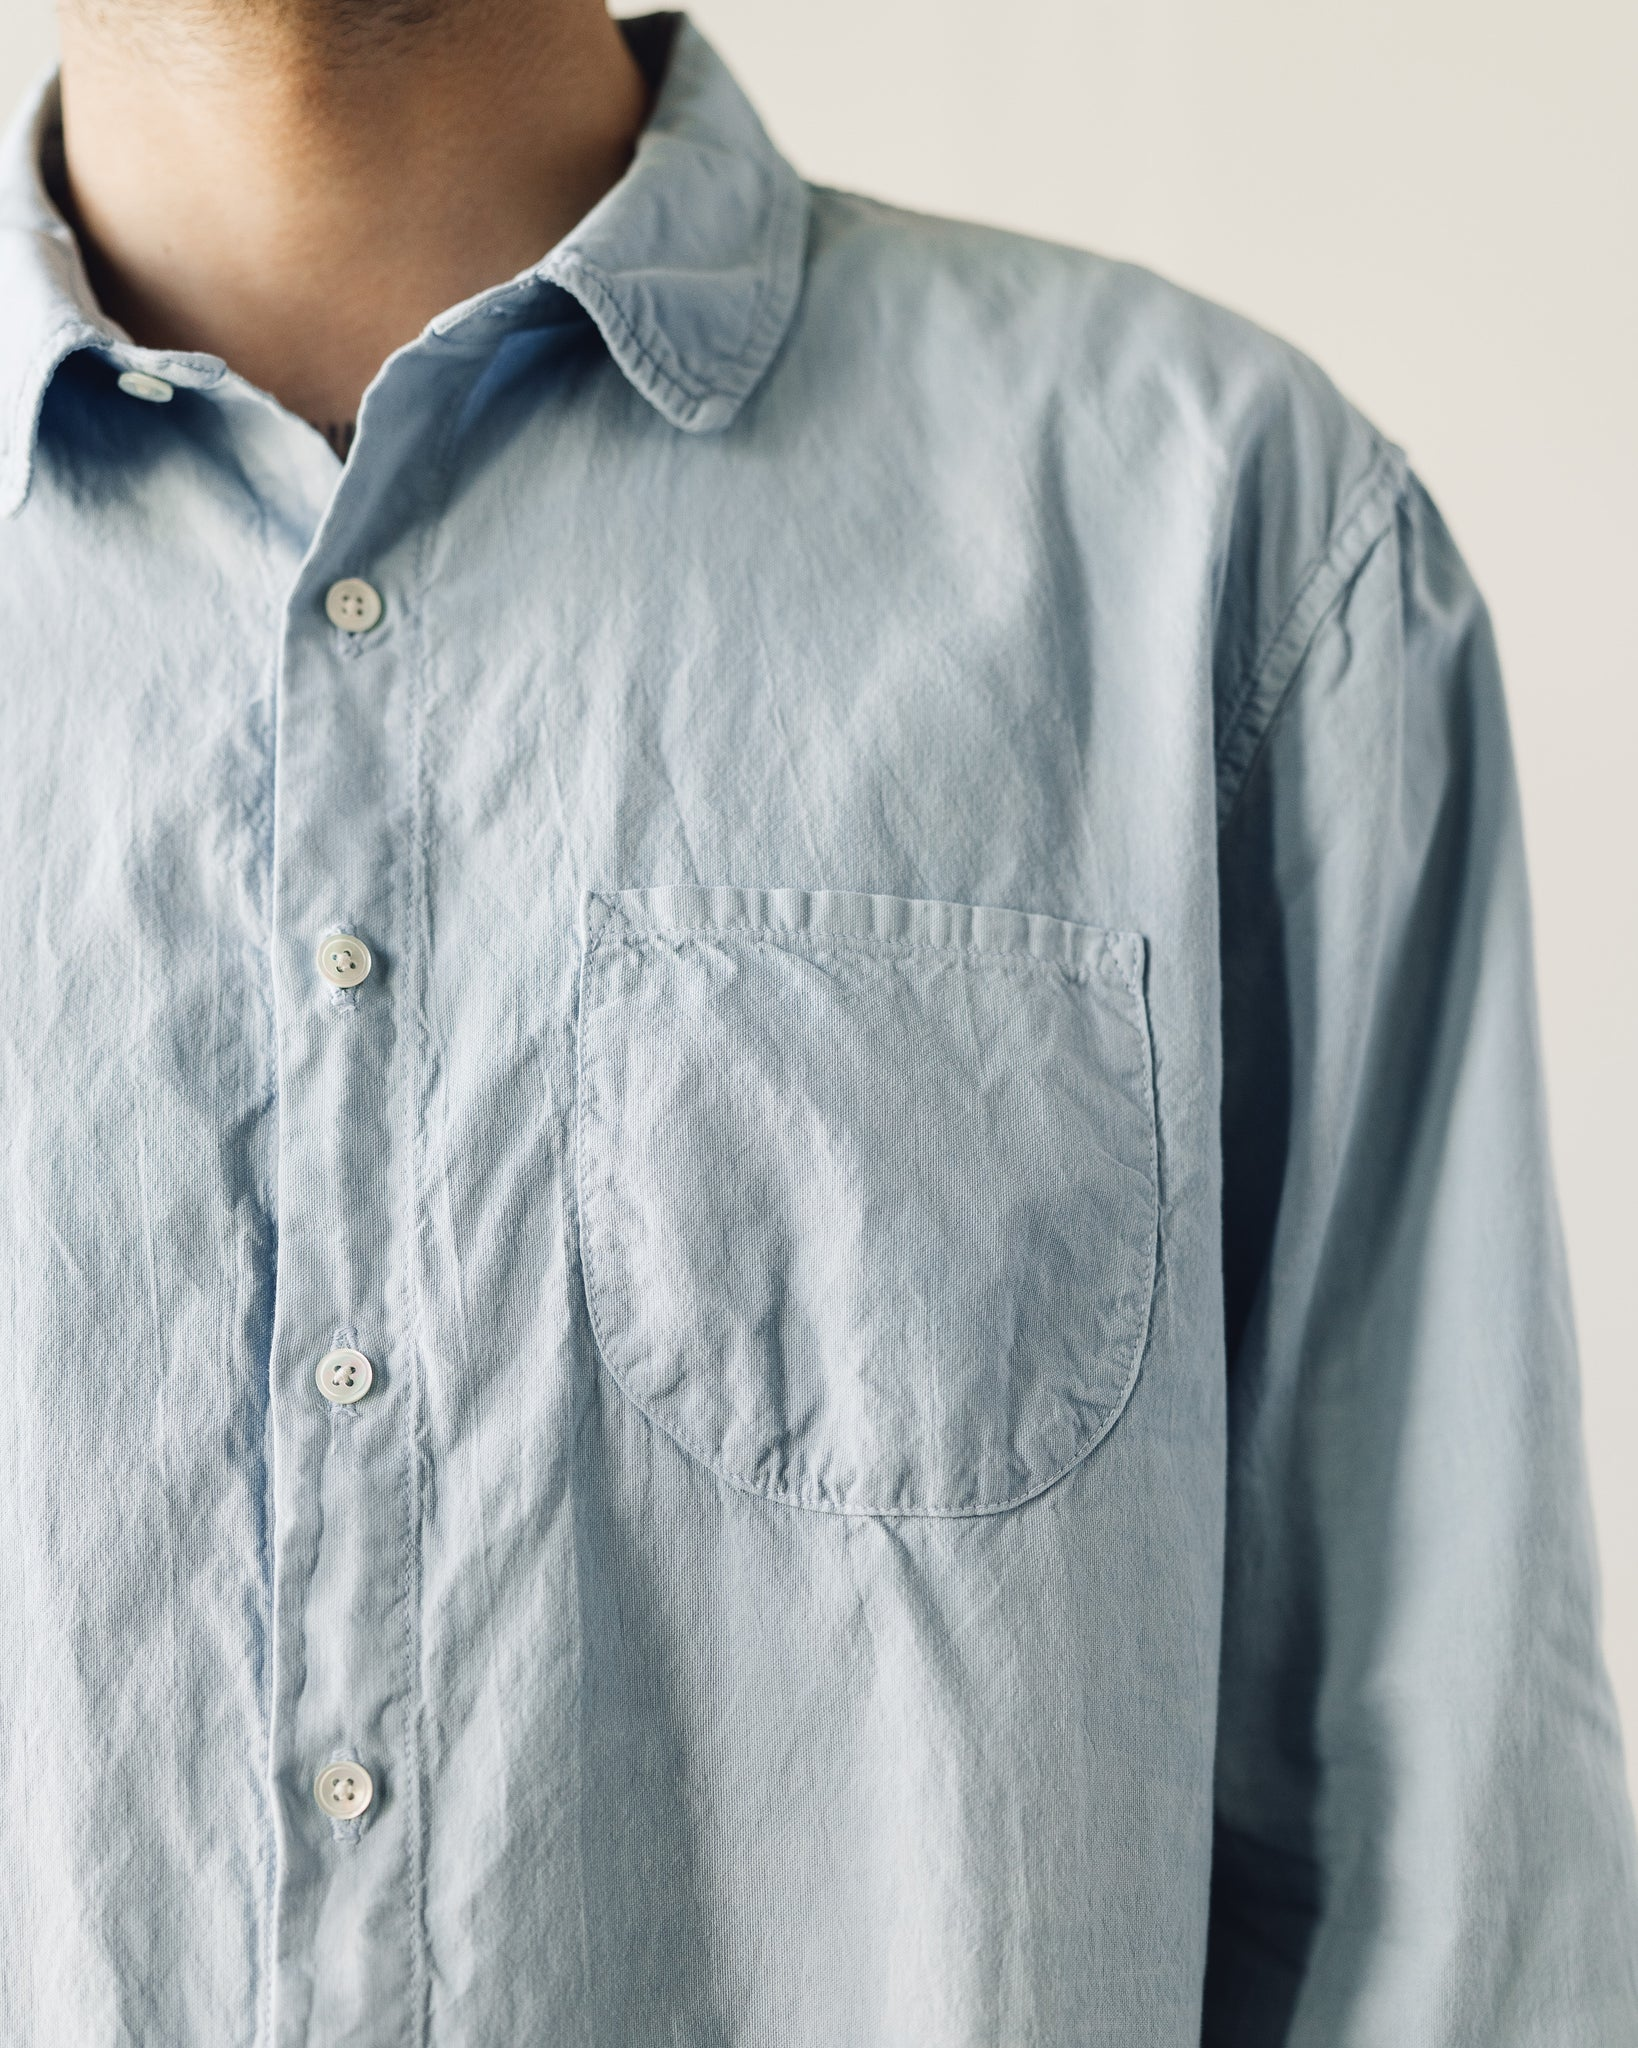 Older Brother Classic Shirt, Light Indigo